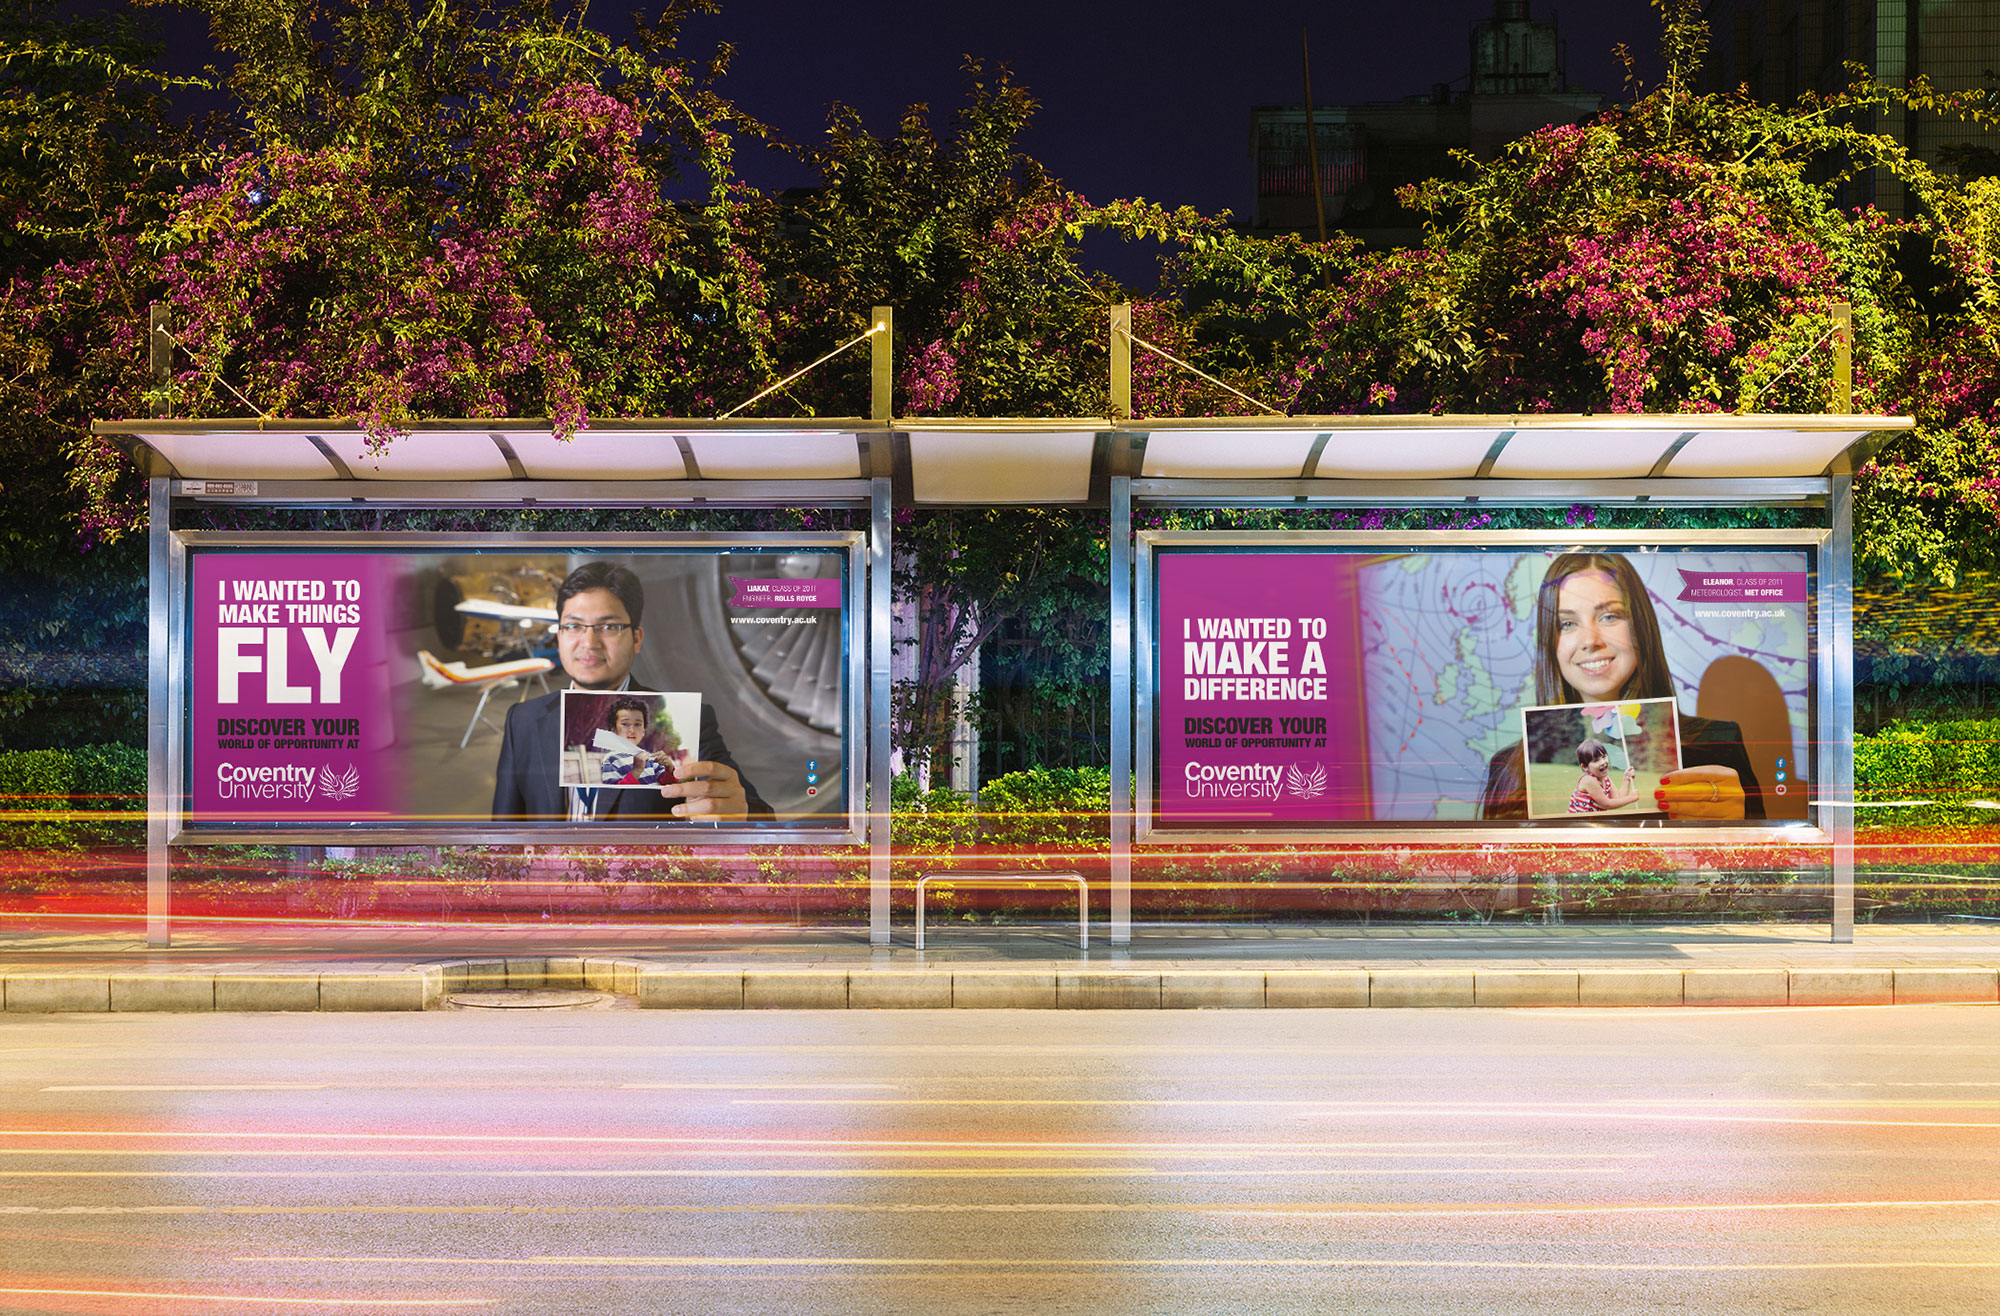 I wanted to advertising campaign